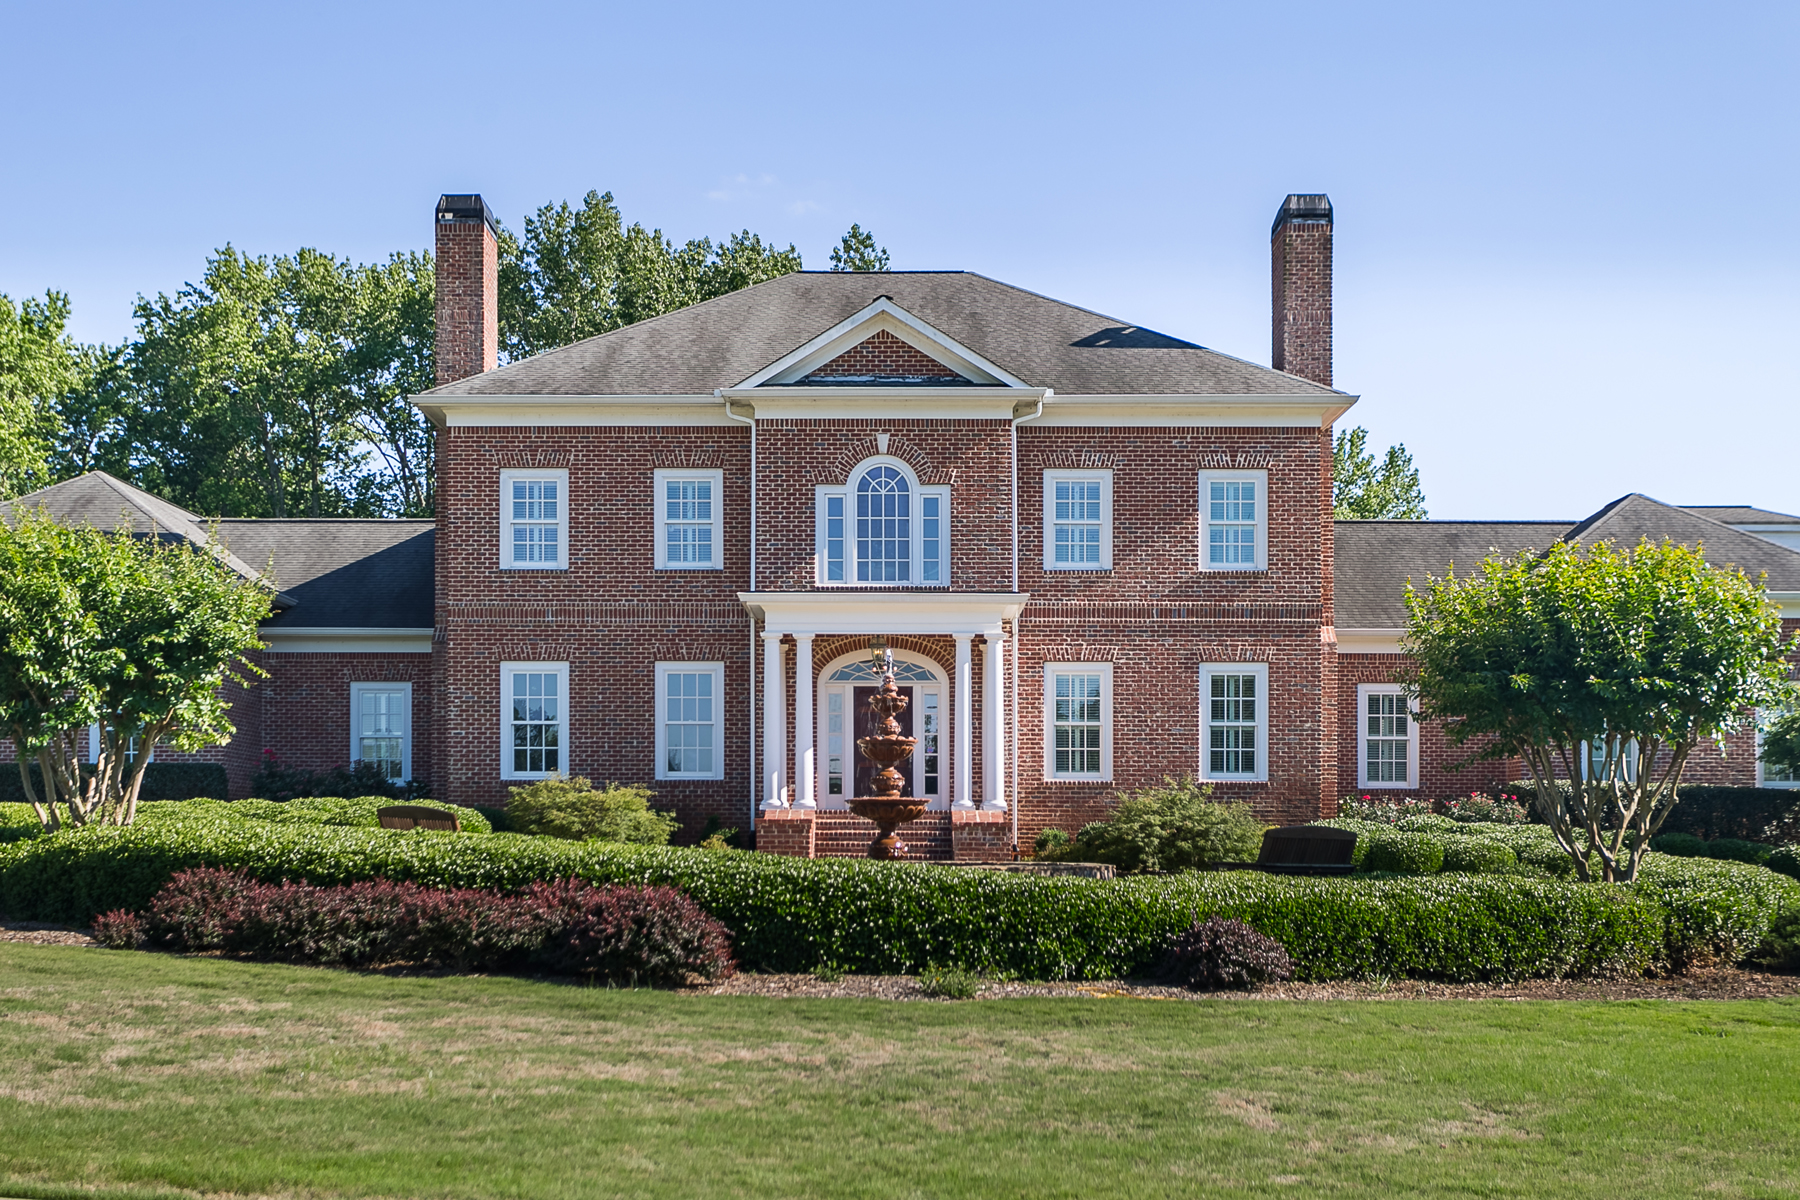 Частный односемейный дом для того Продажа на Elegant Georgian Masterpiece Ideally Sited On 40 Rolling Acres With Private Pond 7 Groover Road Newnan, Джорджия 30265 Соединенные Штаты